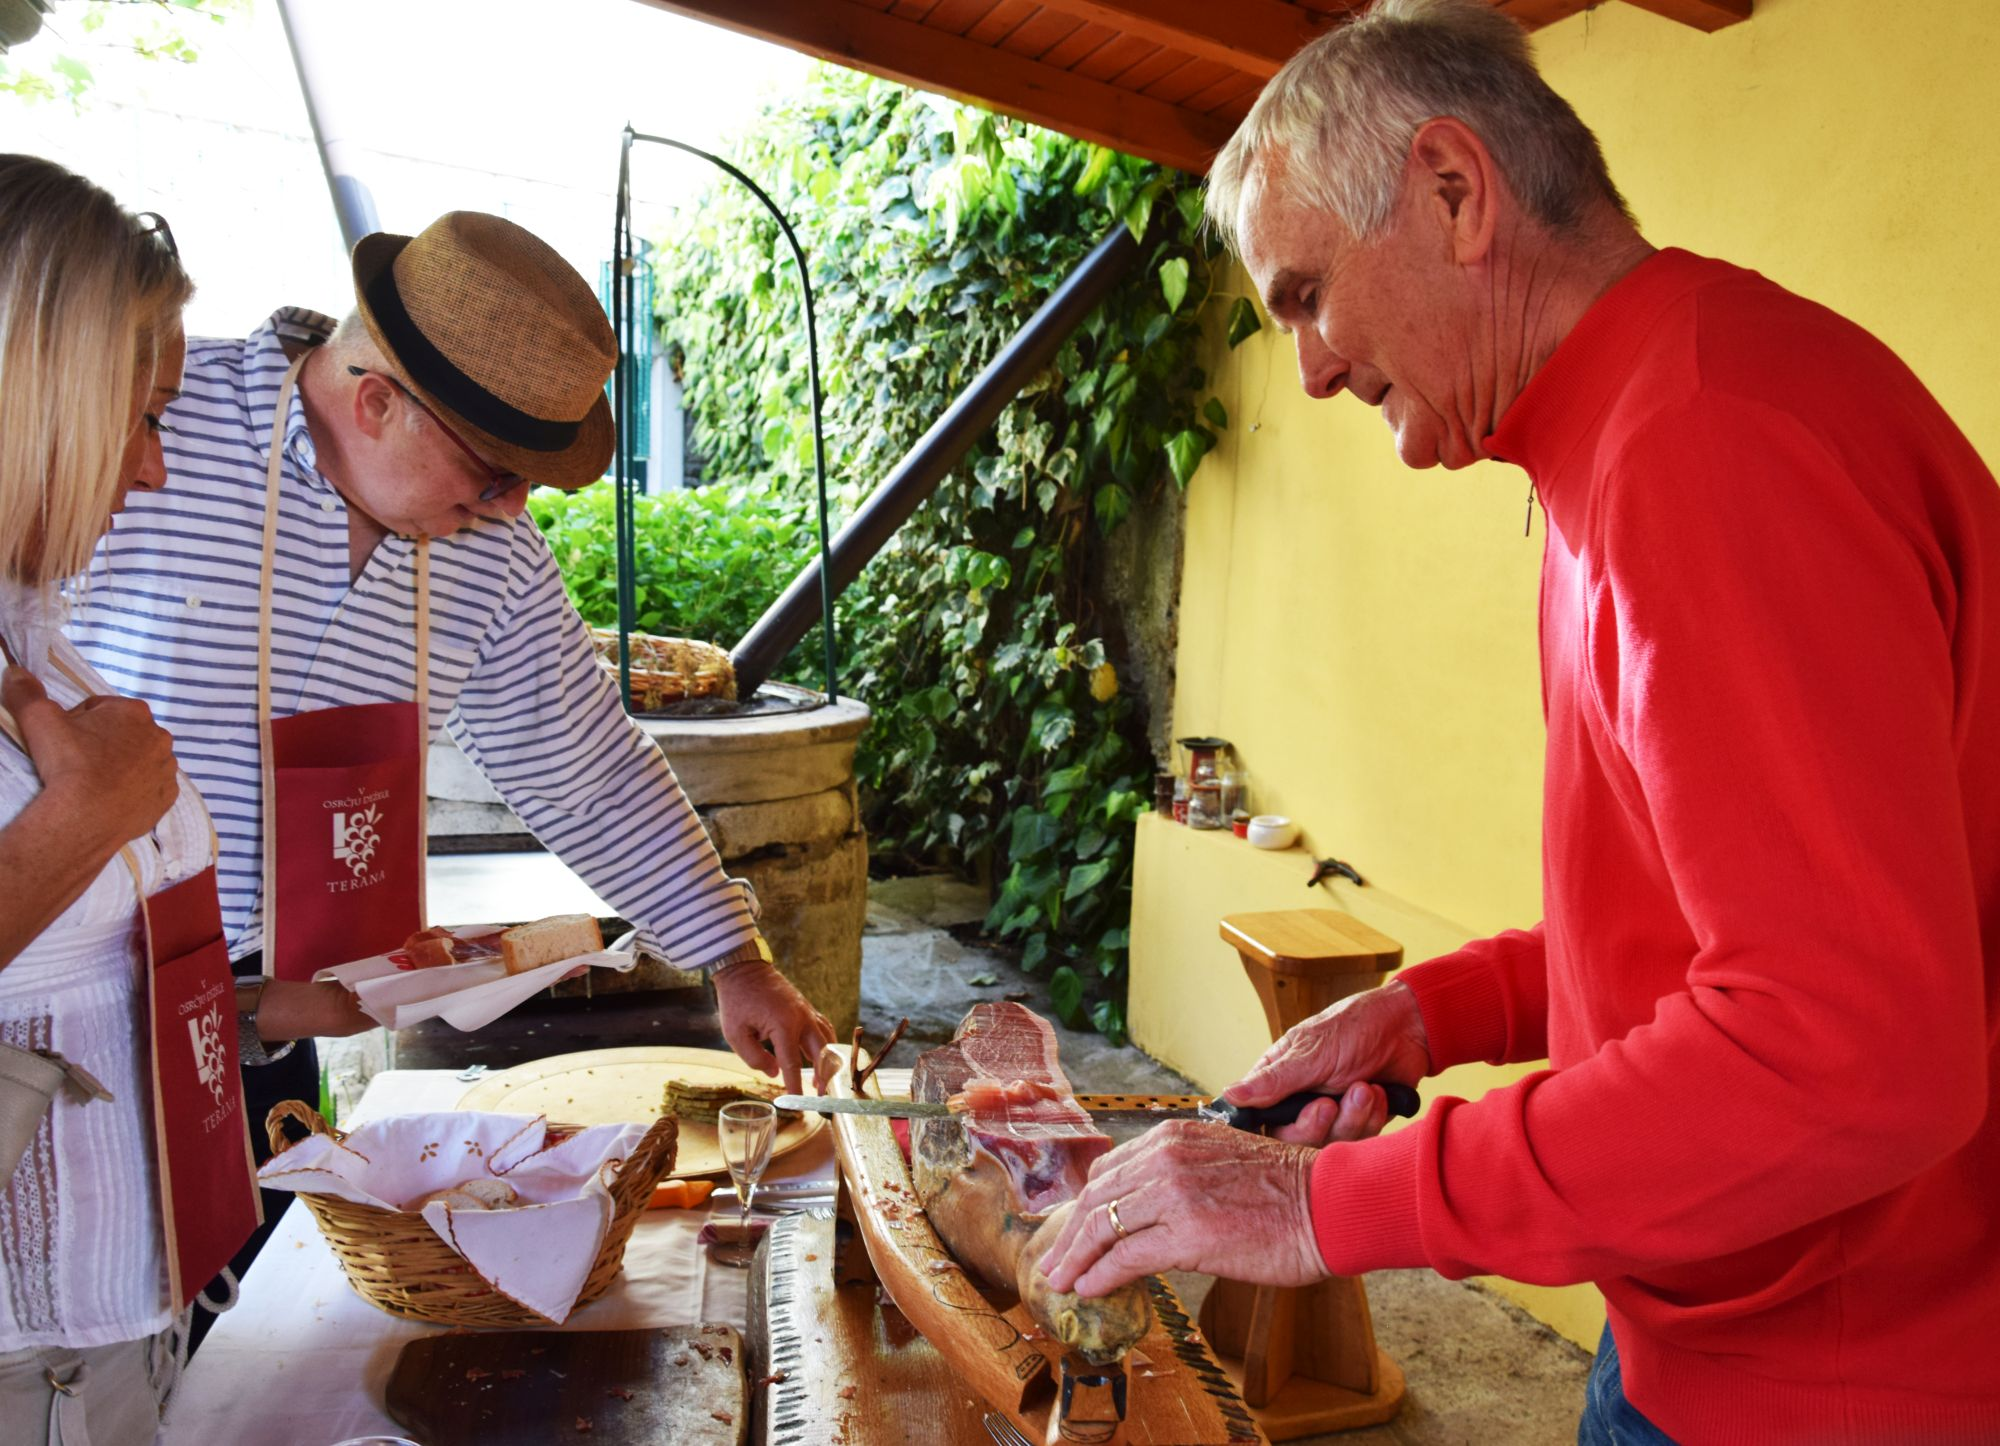 Man cutting slices of prosciutto from a pig leg